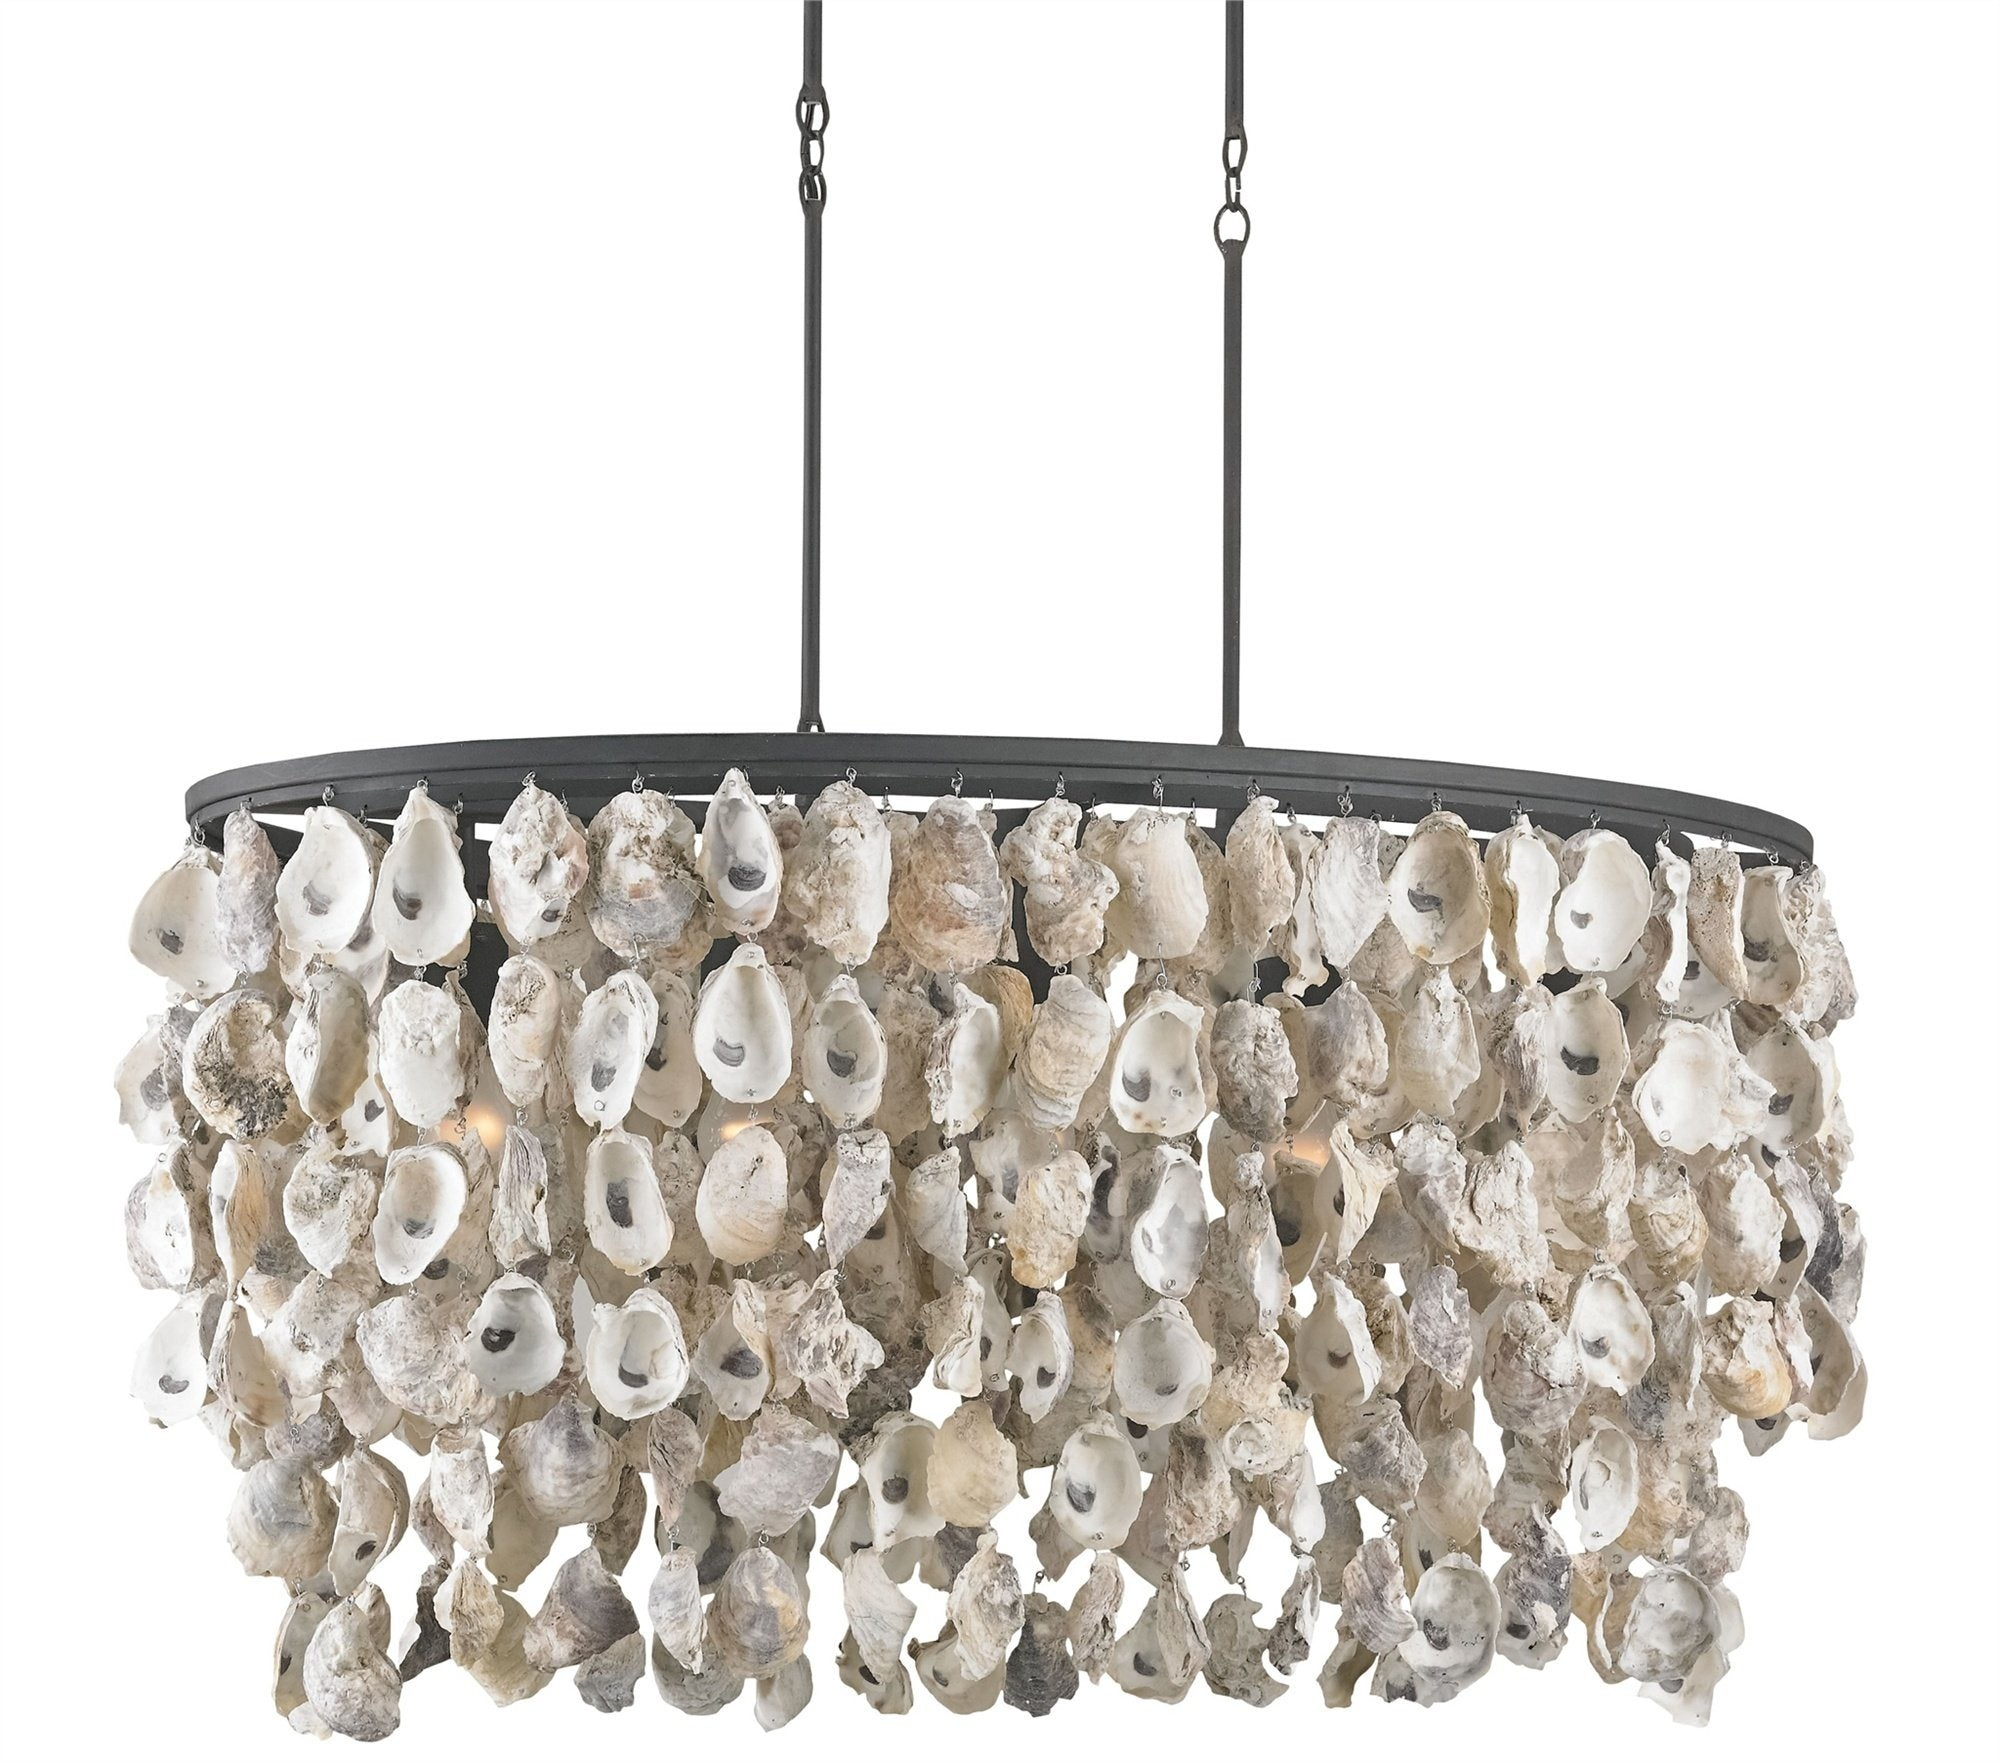 six dp lighting crystal amazon com leaf light finish silver currey and company chandelier small